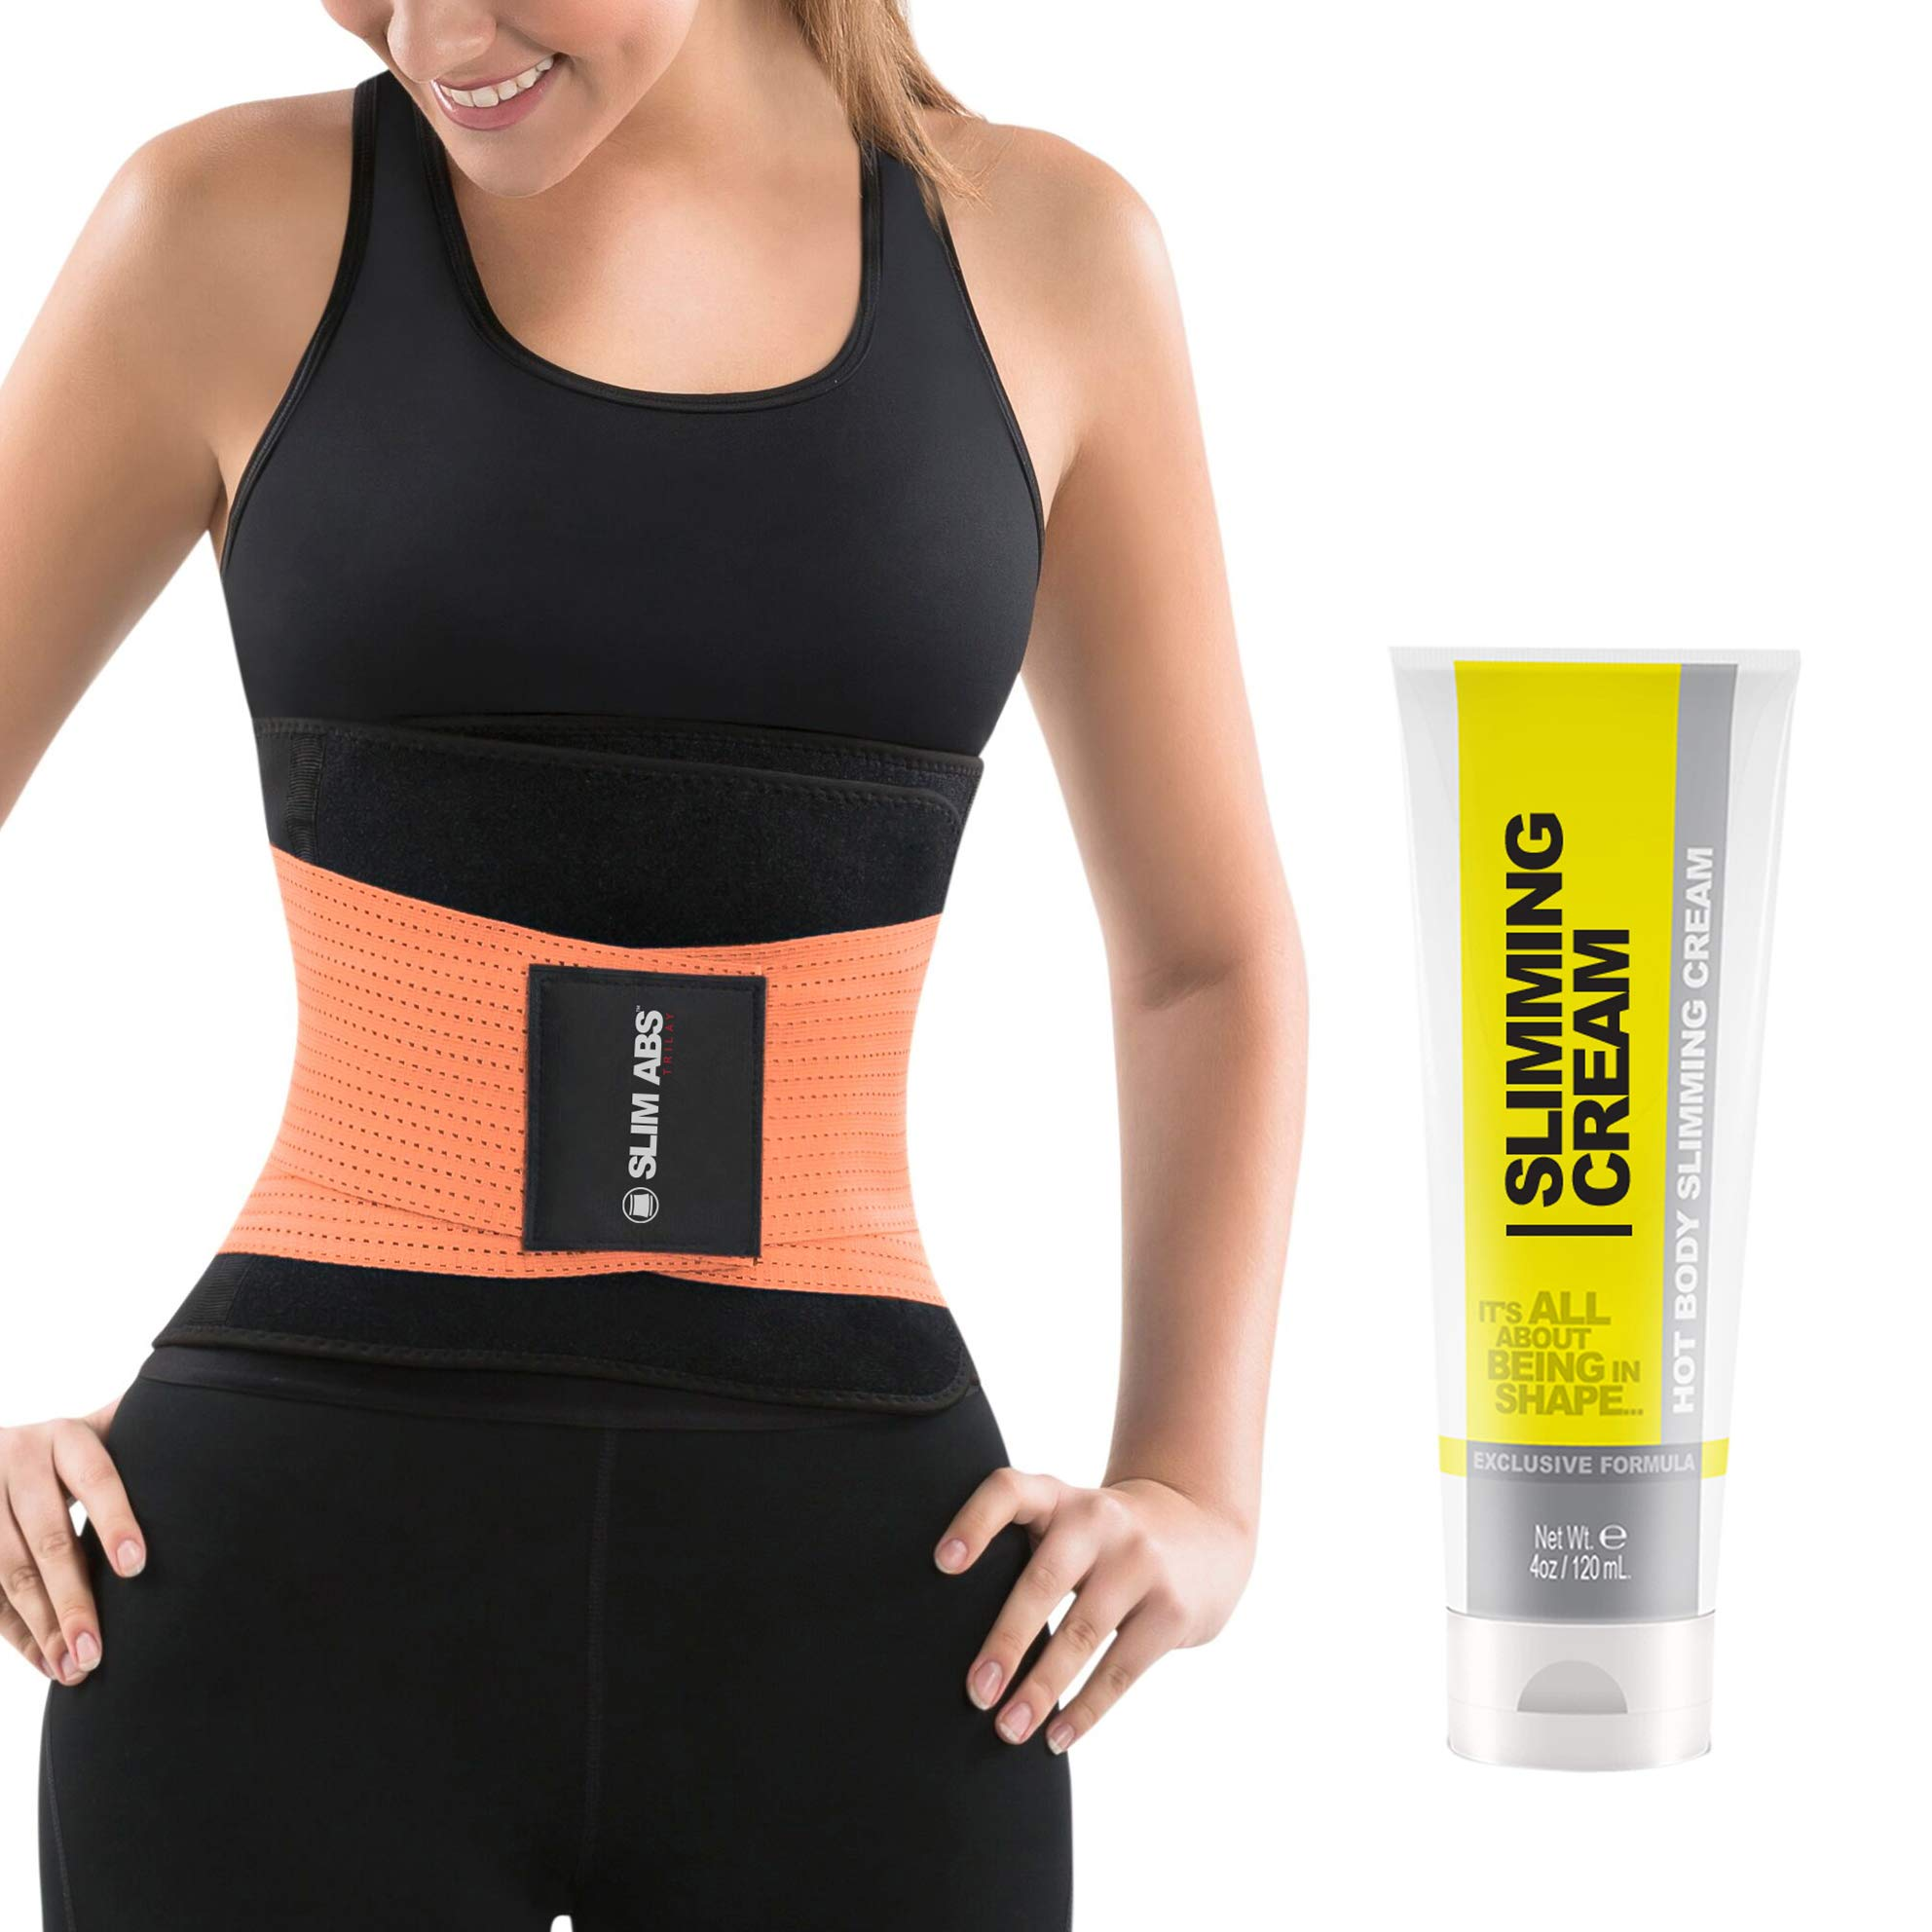 Slim Abs Waist Trainer Sweat Belt with Slimming Cream - Waist Trimmer for Women and Thermogenic Workout Gel (Orange, S/M) by Slim Abs Trilay (Image #1)